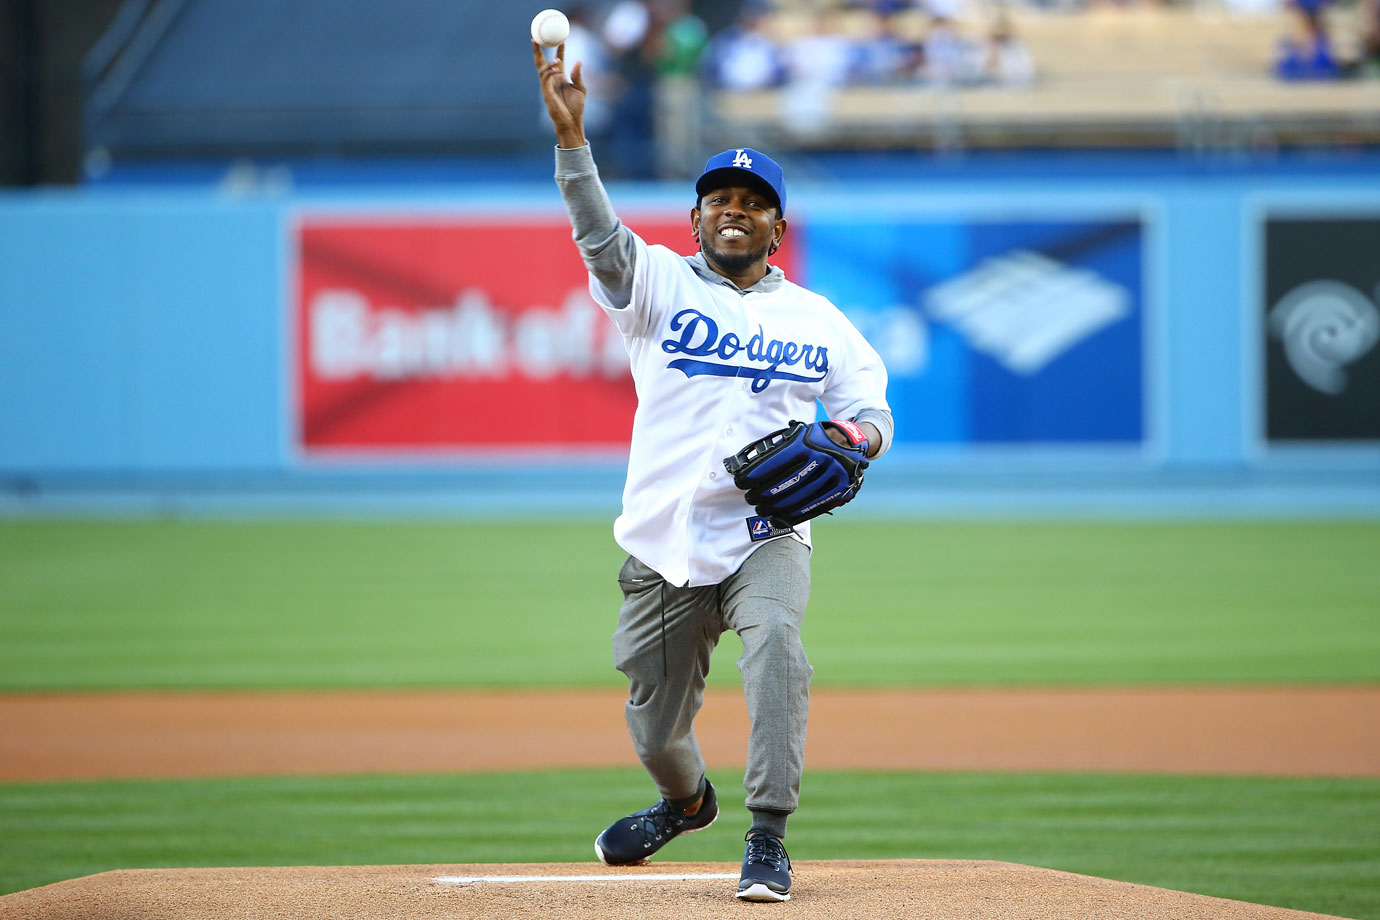 April 27 at Dodger Stadium in Los Angeles